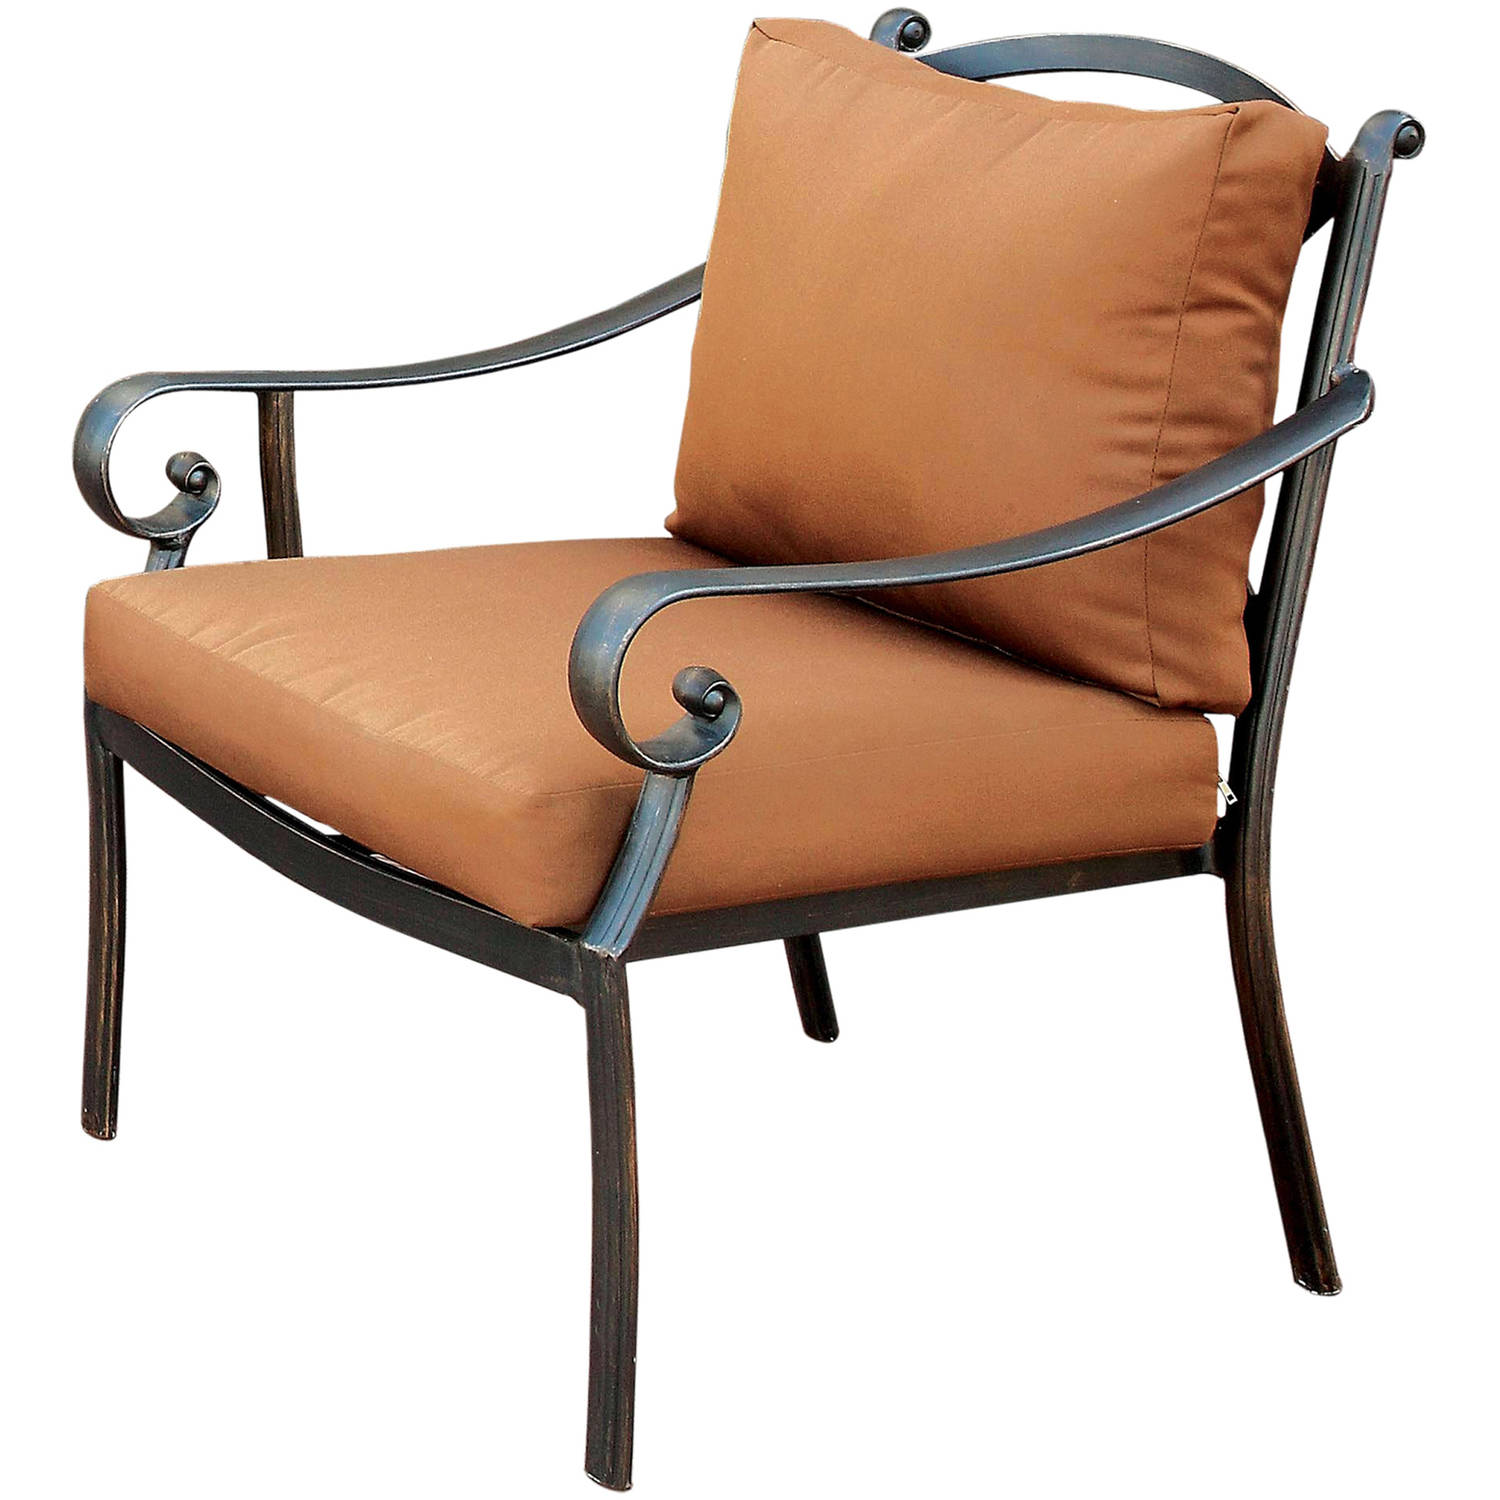 Furniture of America Loreen Contemporary Patio Chair, Distressed Black and Brown